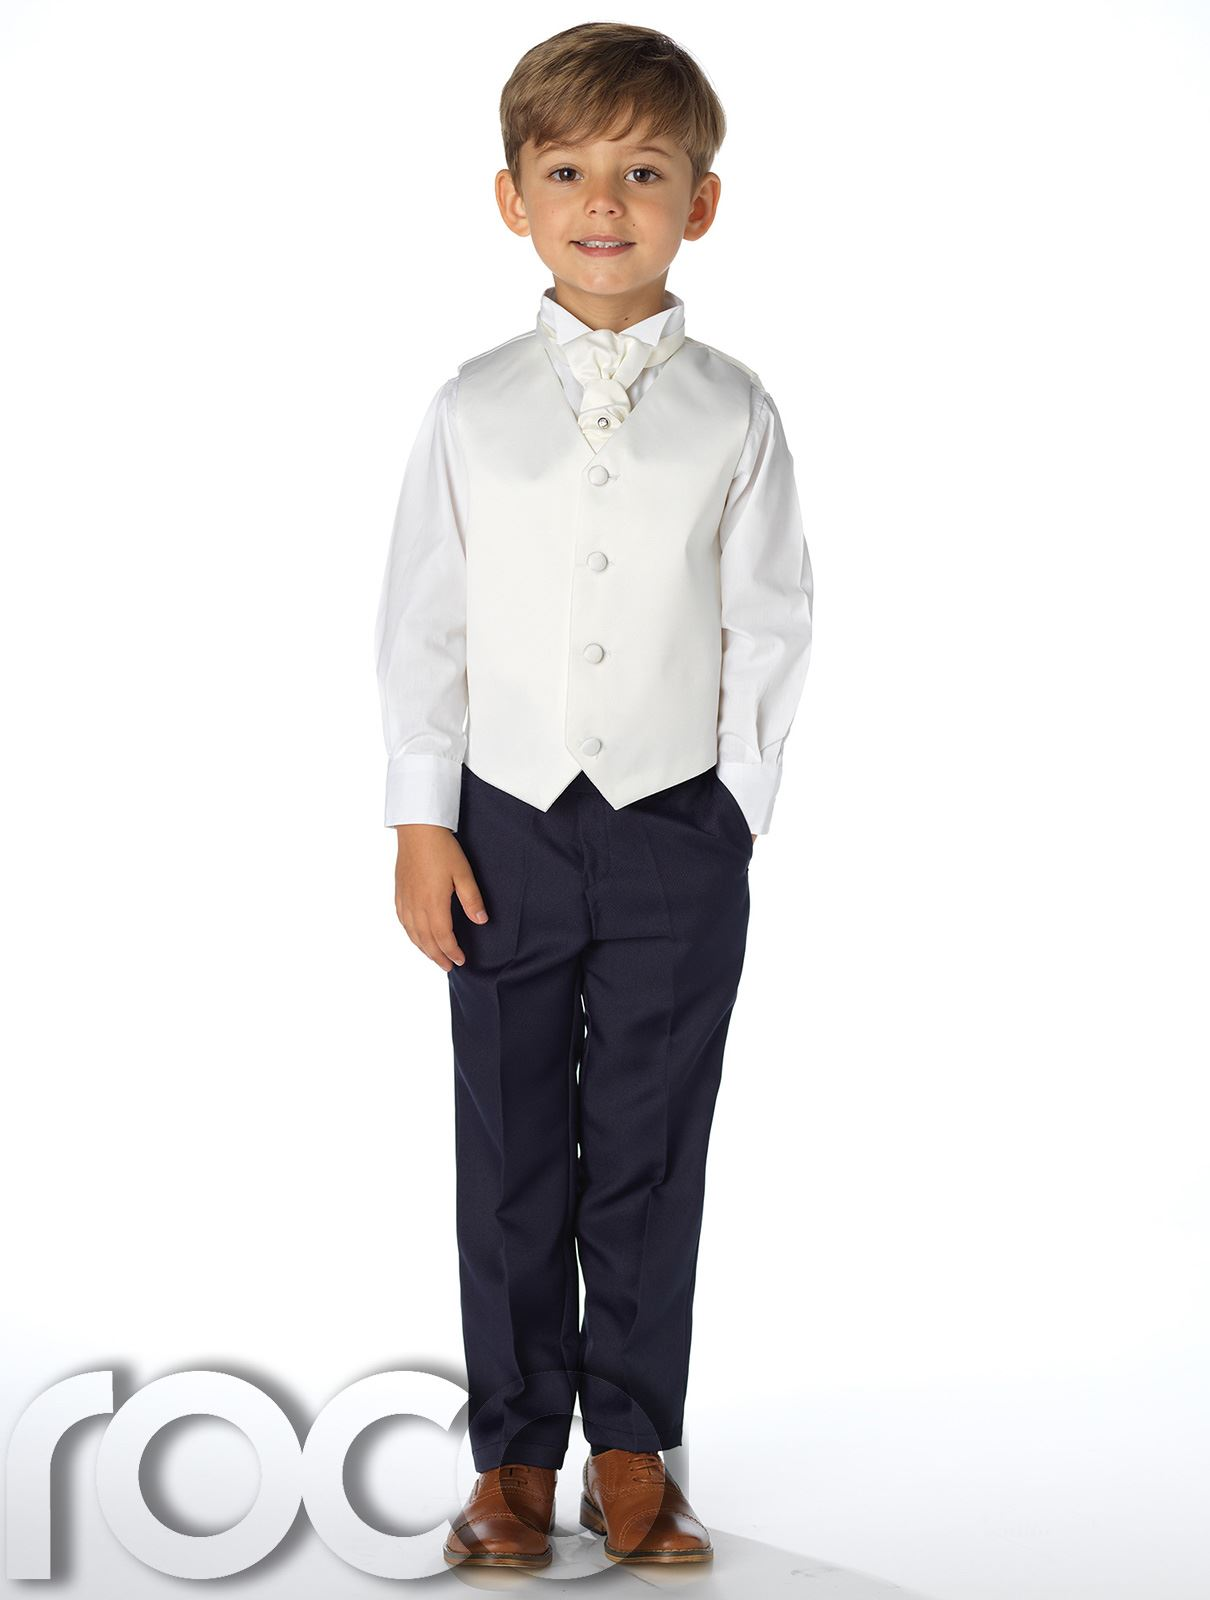 Boys Waistcoat Suit, Page Boys Suits, Boys Wedding Suit, Navy ...